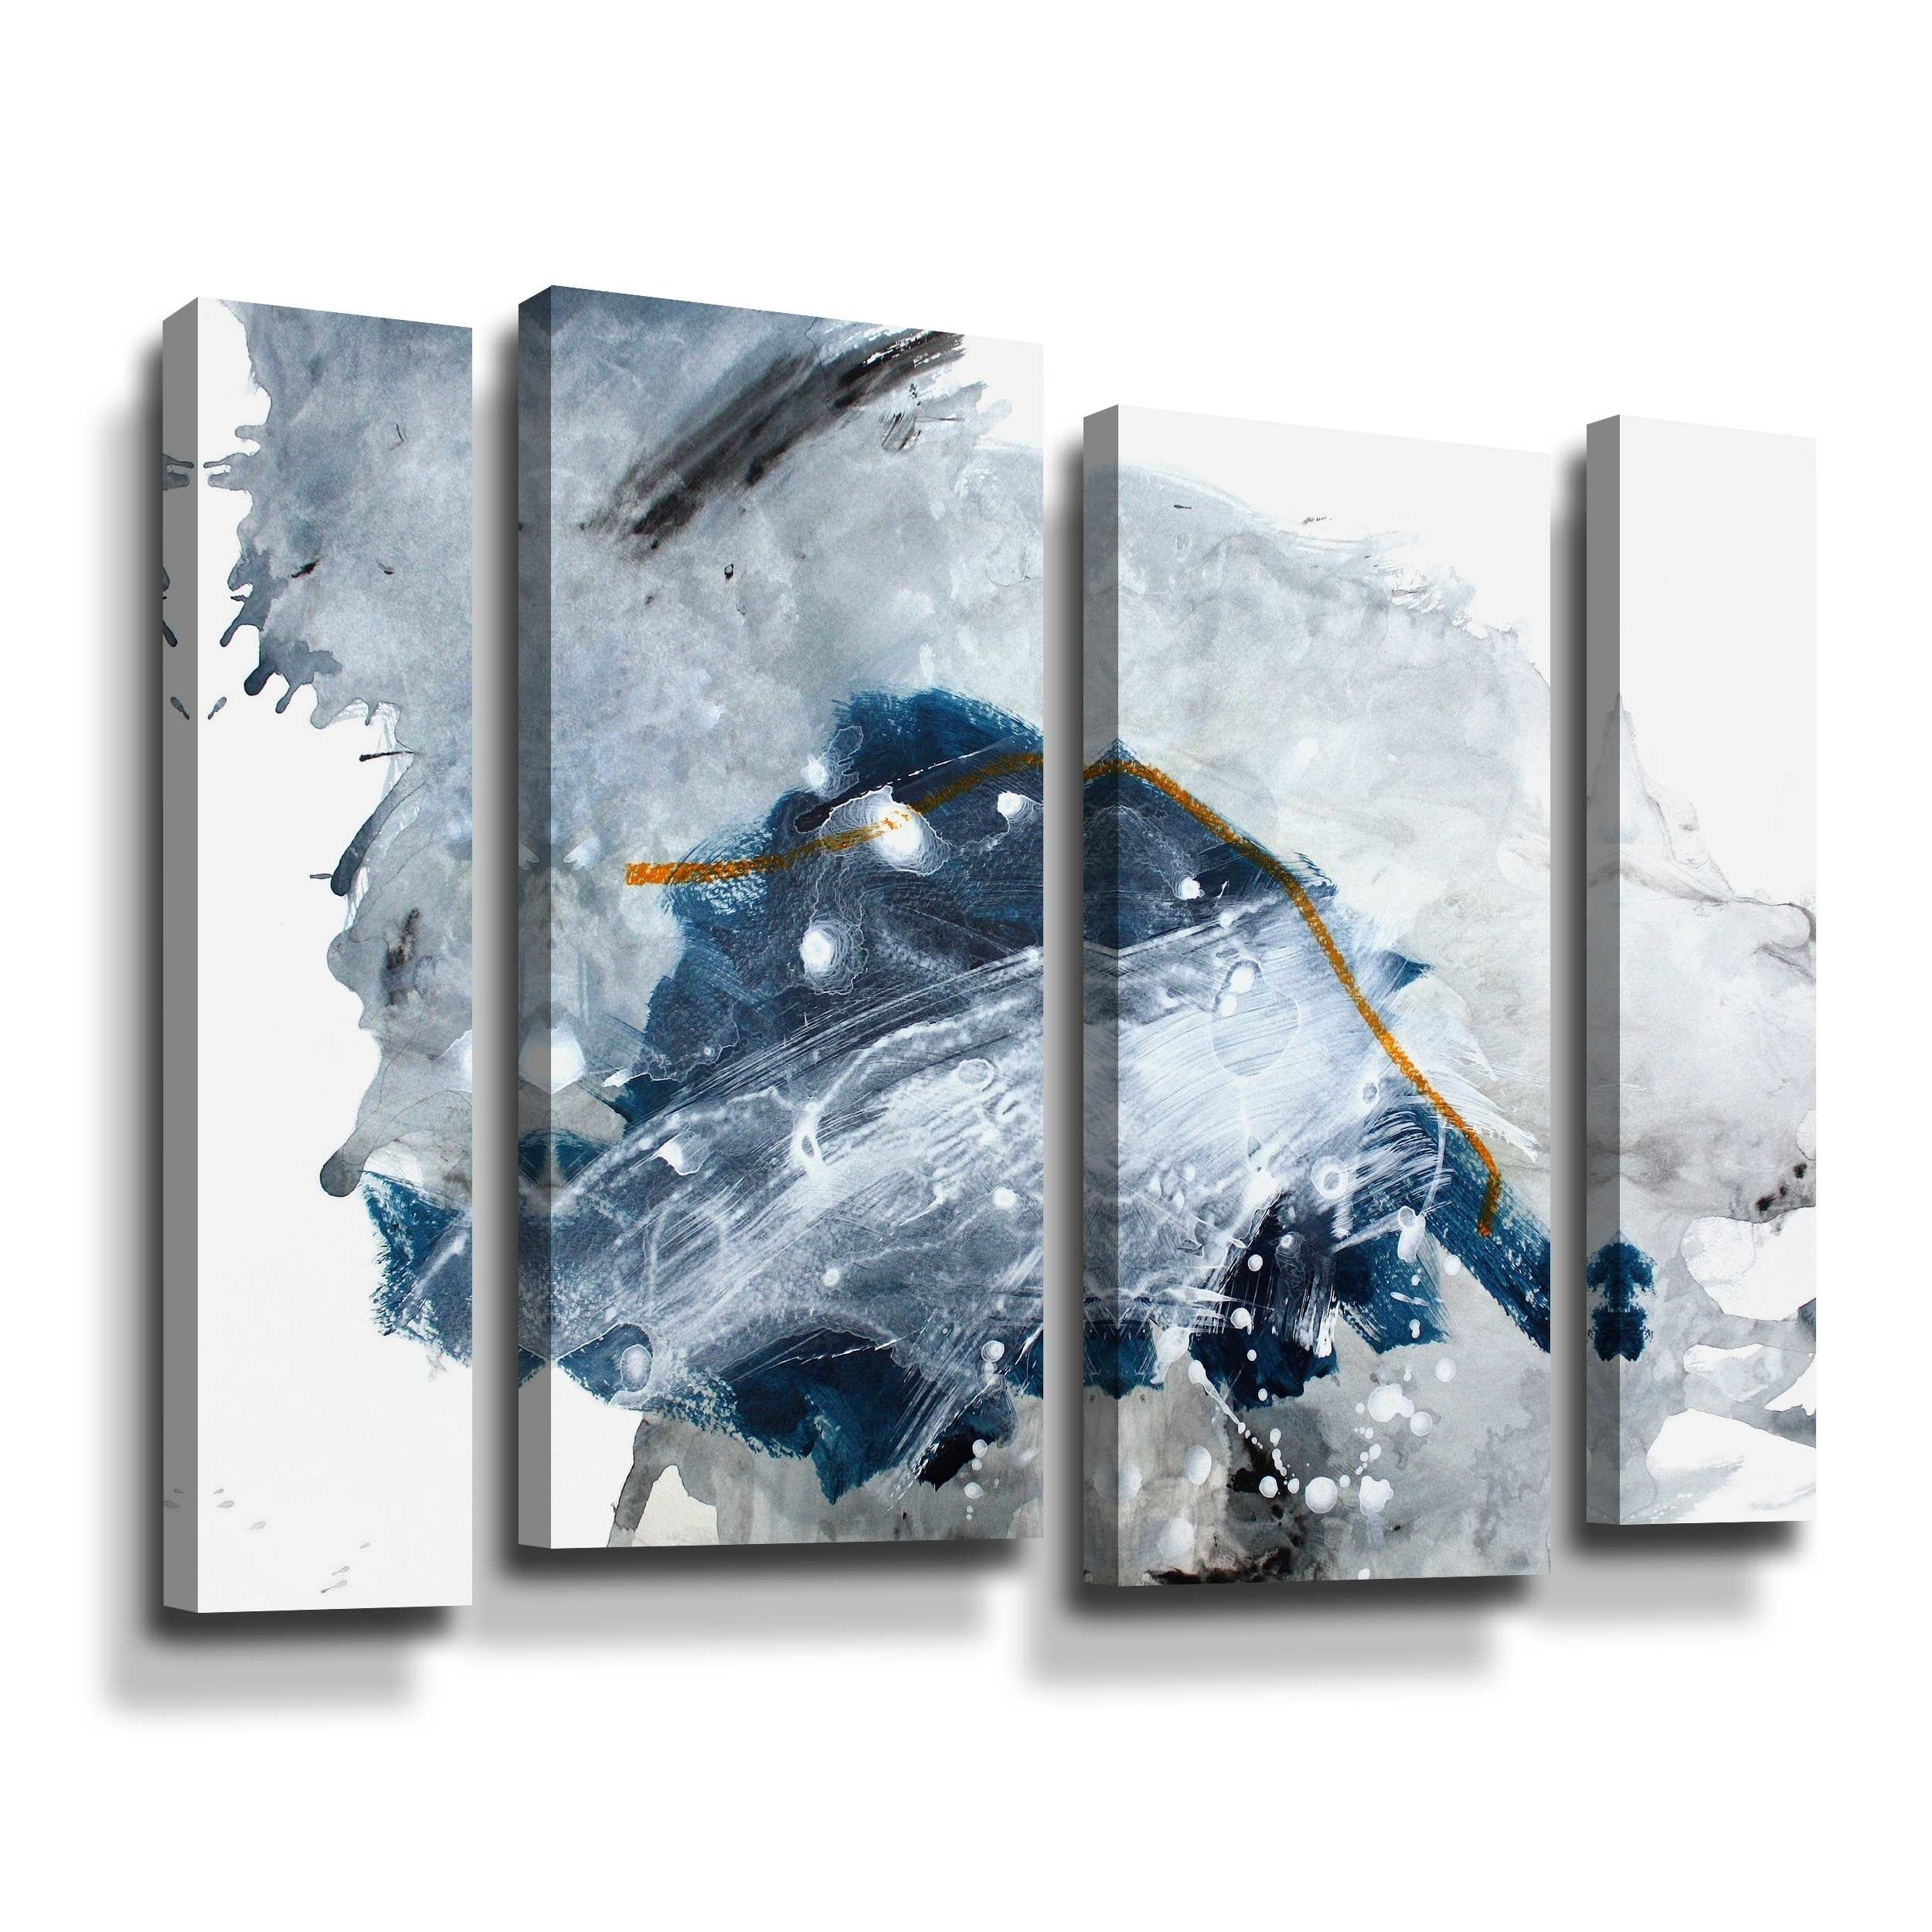 Cartography 4 Piece Gallery Wrapped Canvas Staggered Set Blue Artwall In 2020 Gallery Wrap Canvas Canvas Set Wall Art Prints